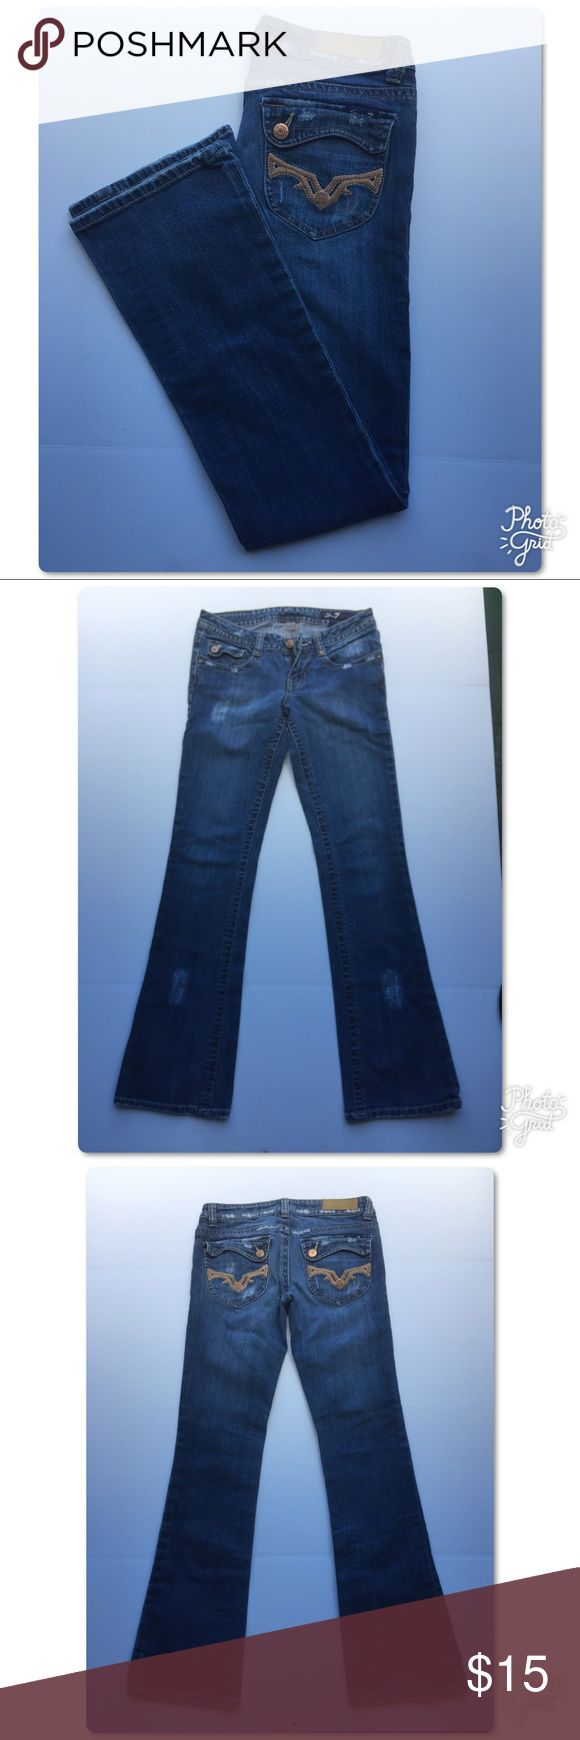 Seven7 Jeans Size 26 Preloved in great condition Seven7 Jeans